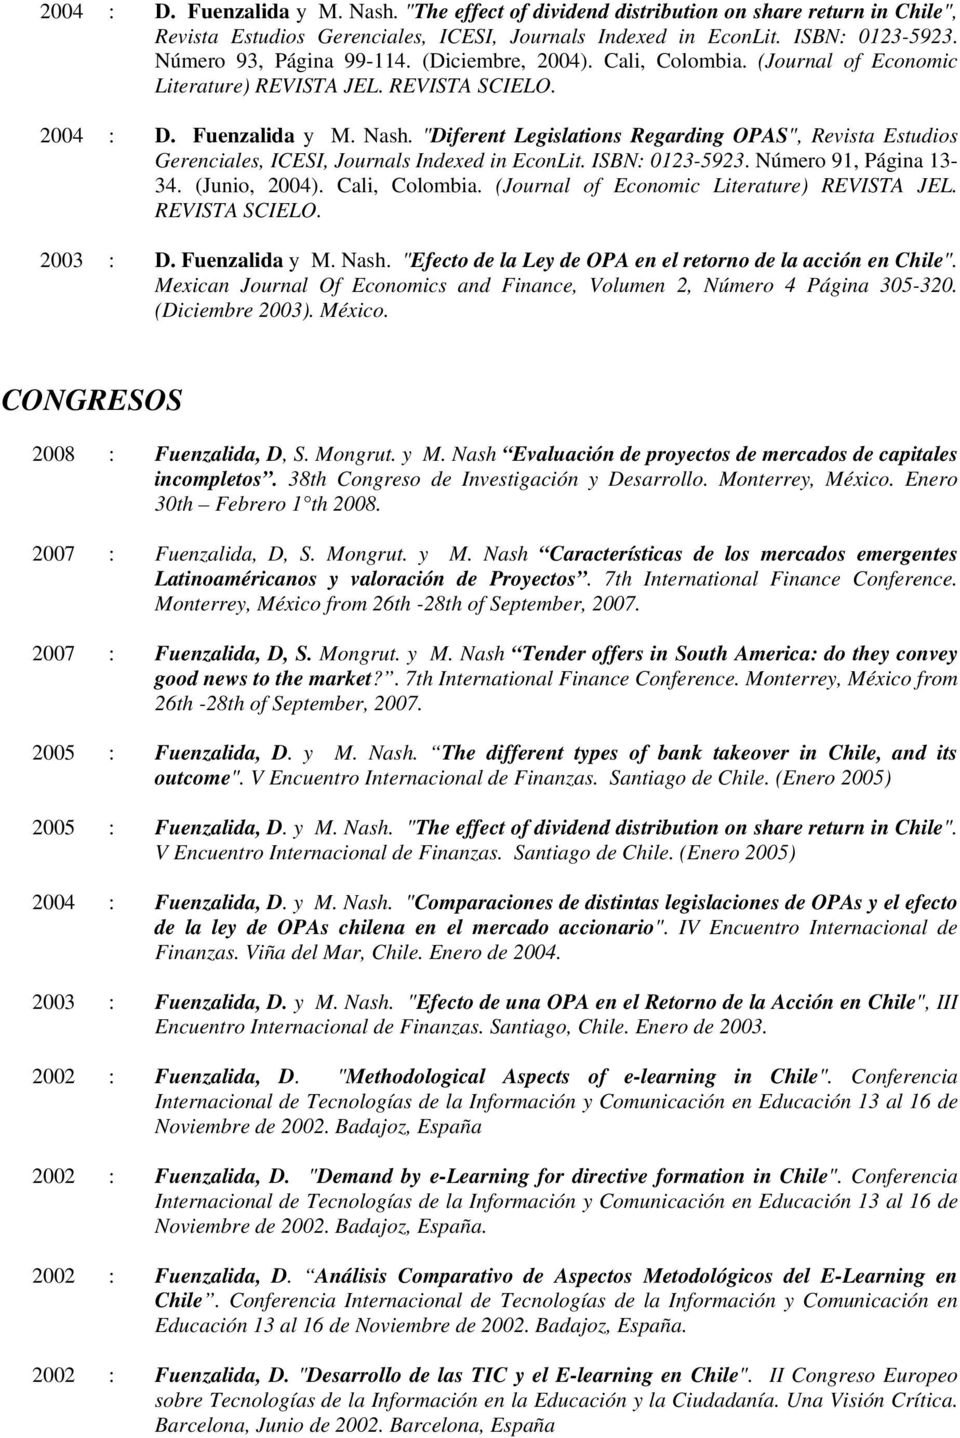 """Diferent Legislations Regarding OPAS"", Revista Estudios Gerenciales, ICESI, Journals Indexed in EconLit. ISBN: 0123-5923. Número 91, Página 13-34. (Junio, 2004). Cali, Colombia."